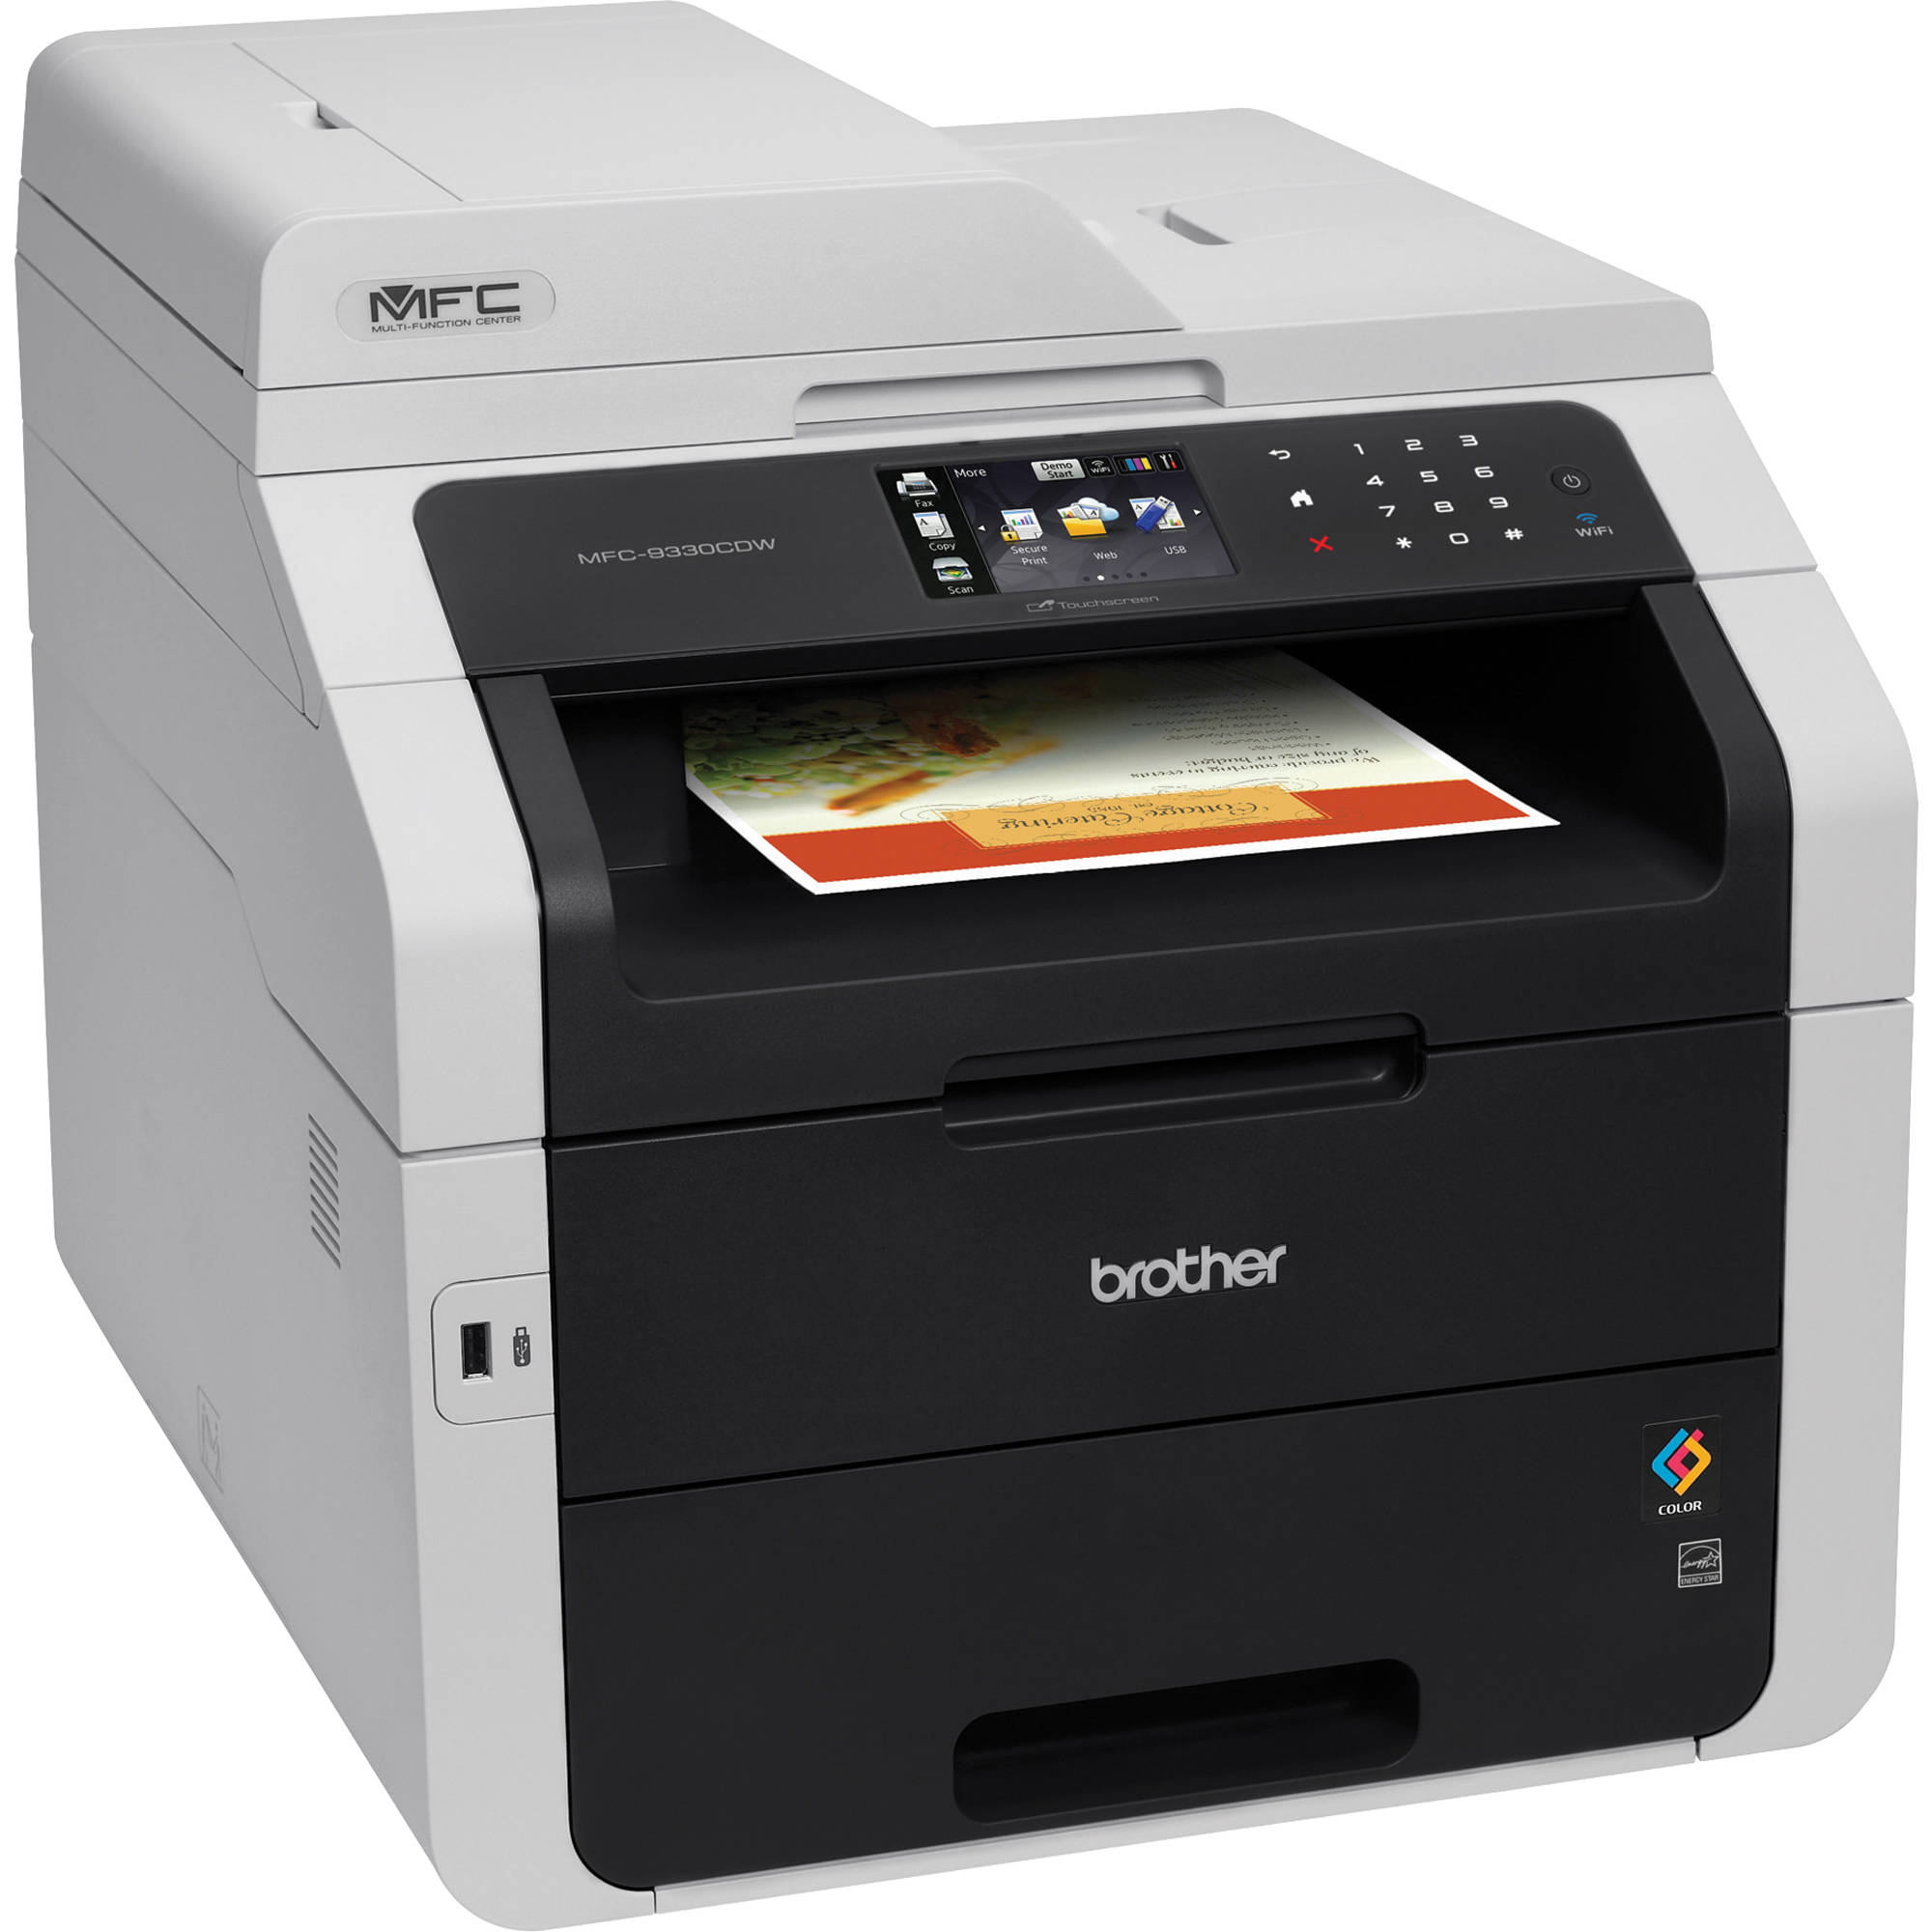 Color printers laser - Brother Mfc 9330cdw Wireless Color All In One Laser Printer